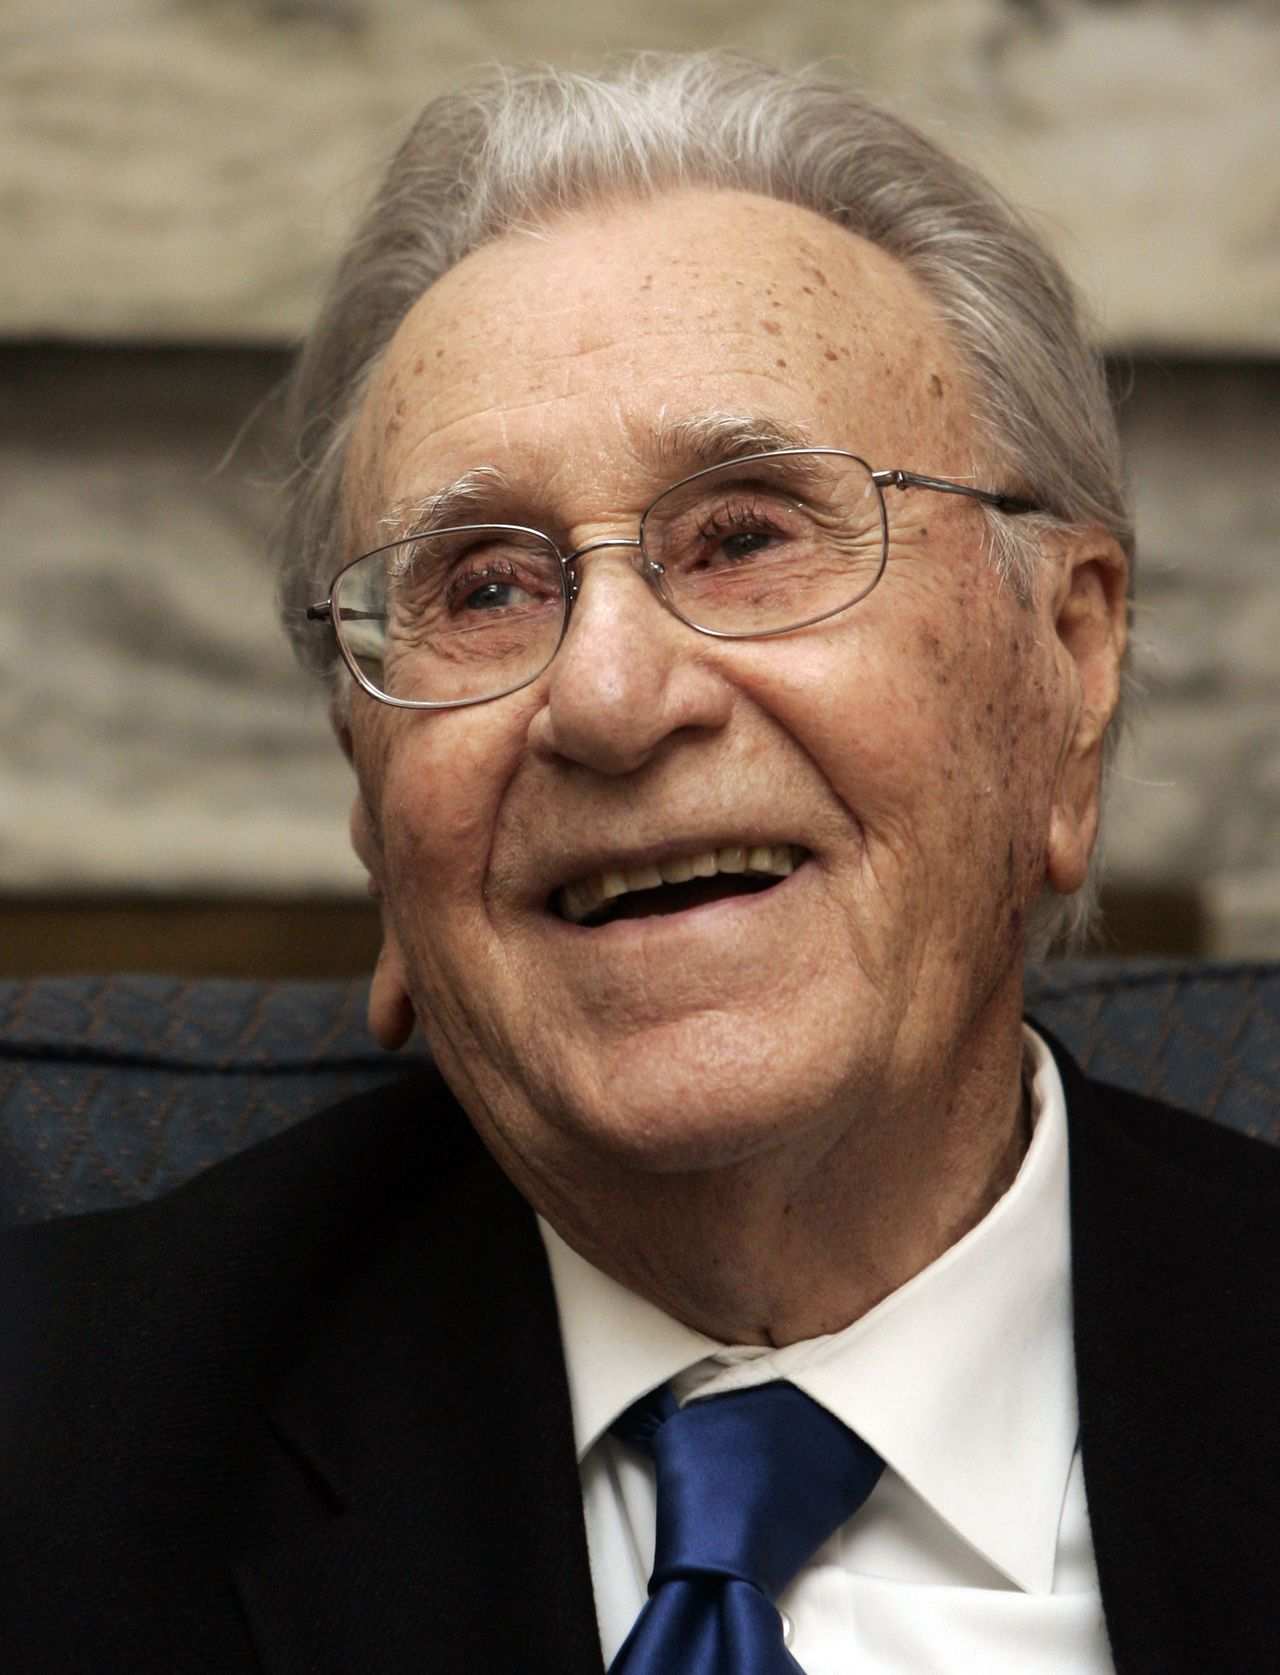 FILE - In this Thursday, May 7, 2009 file photo Evangelist Oral Roberts smiles after being honored on the floor of the Oklahoma Senate in Oklahoma City. A spokesman for Oral Roberts on Tuesday, Dec. 15, 2009 said the evangelist and university founder has died at age 91. (AP Photo/File)